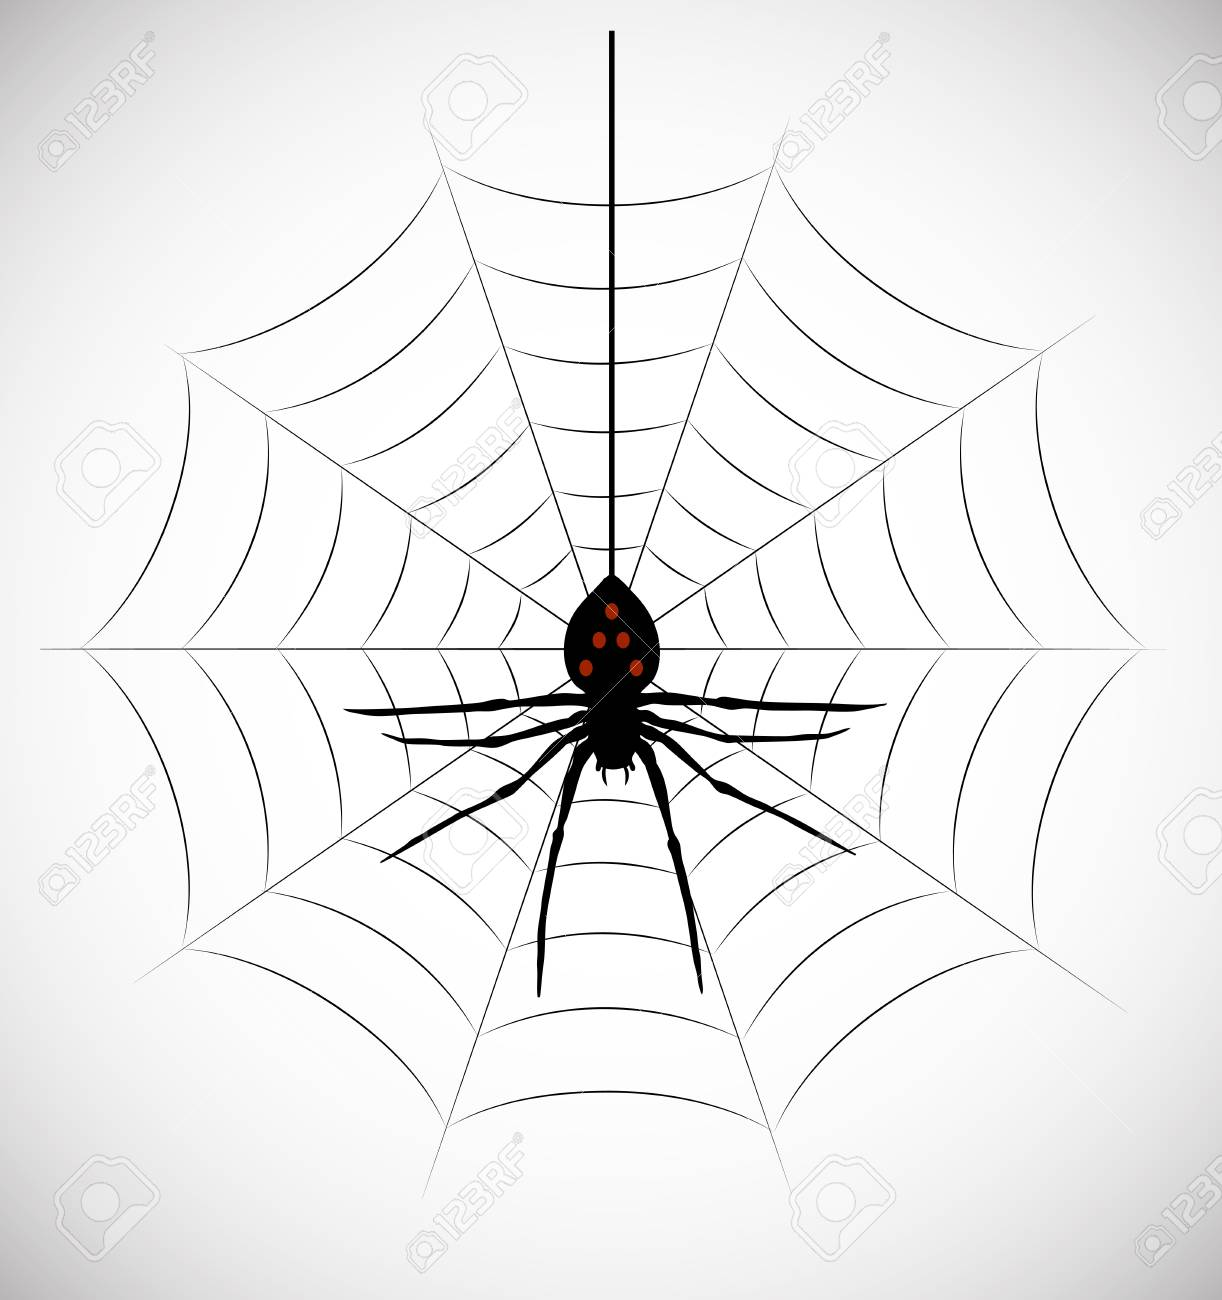 on the image the silhouette of a spider in a web is presented Stock Vector - 18564295